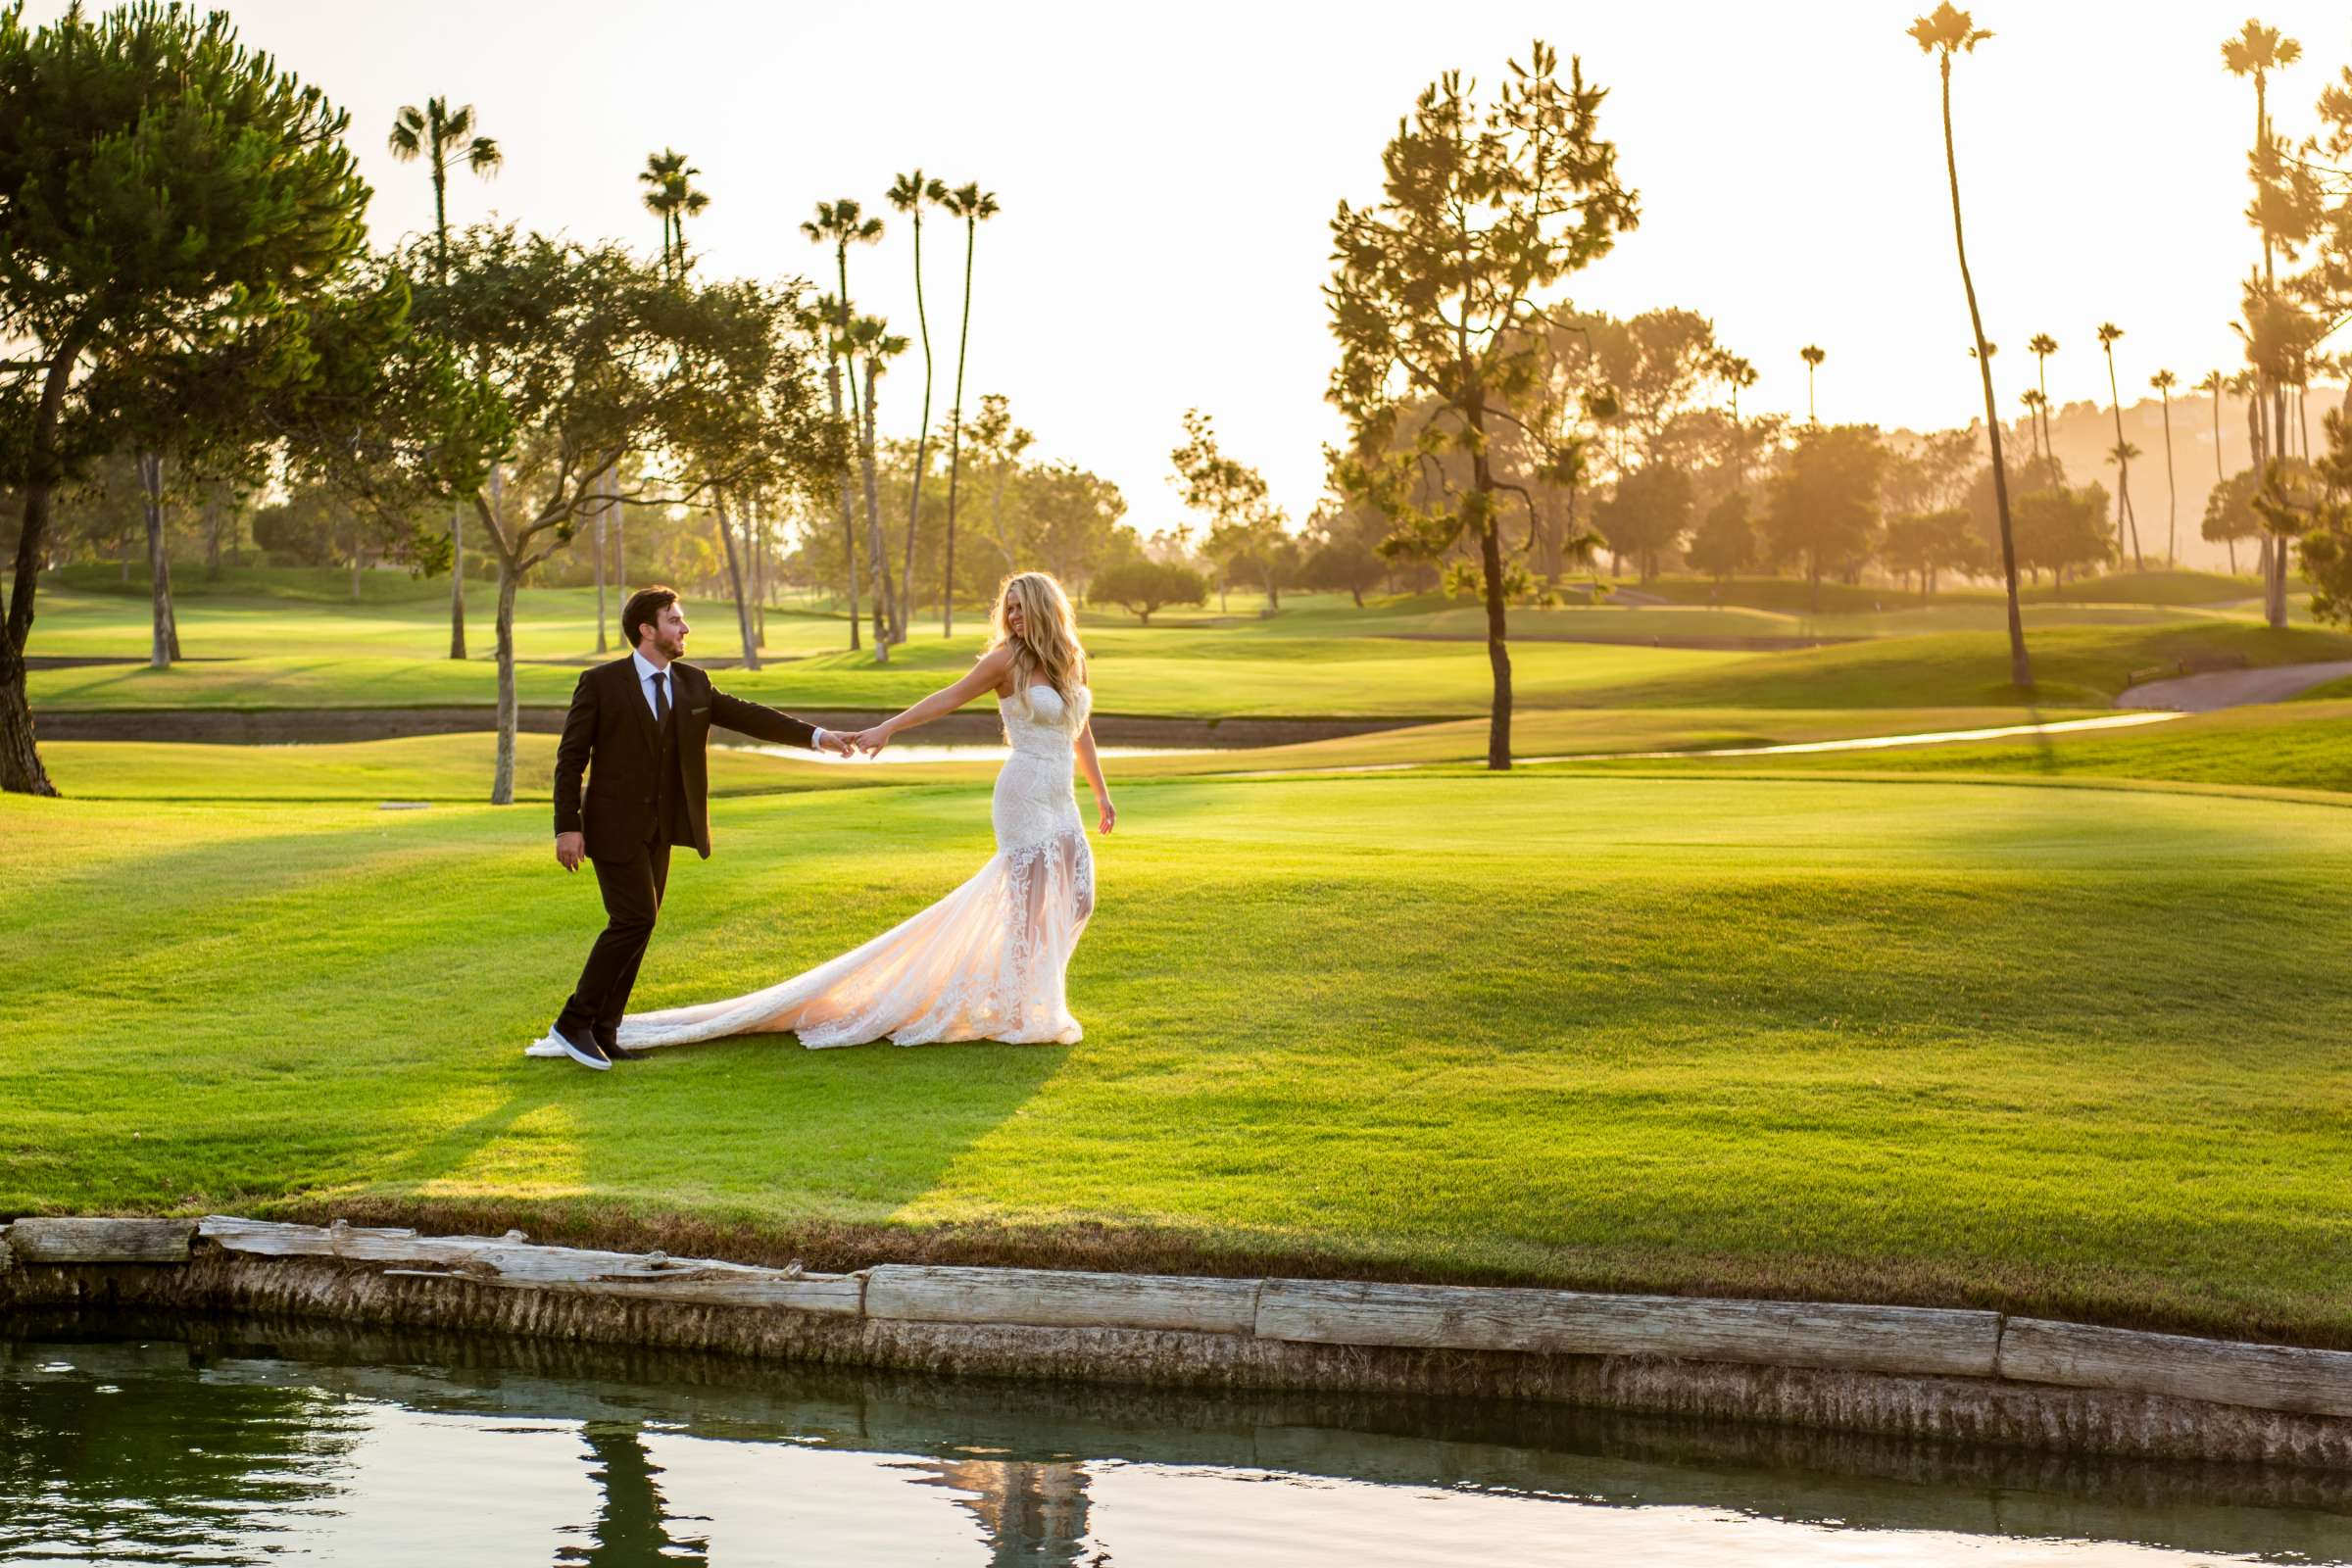 Fairbanks Ranch Country Club Wedding, Ania and David Wedding Photo #489020 by True Photography